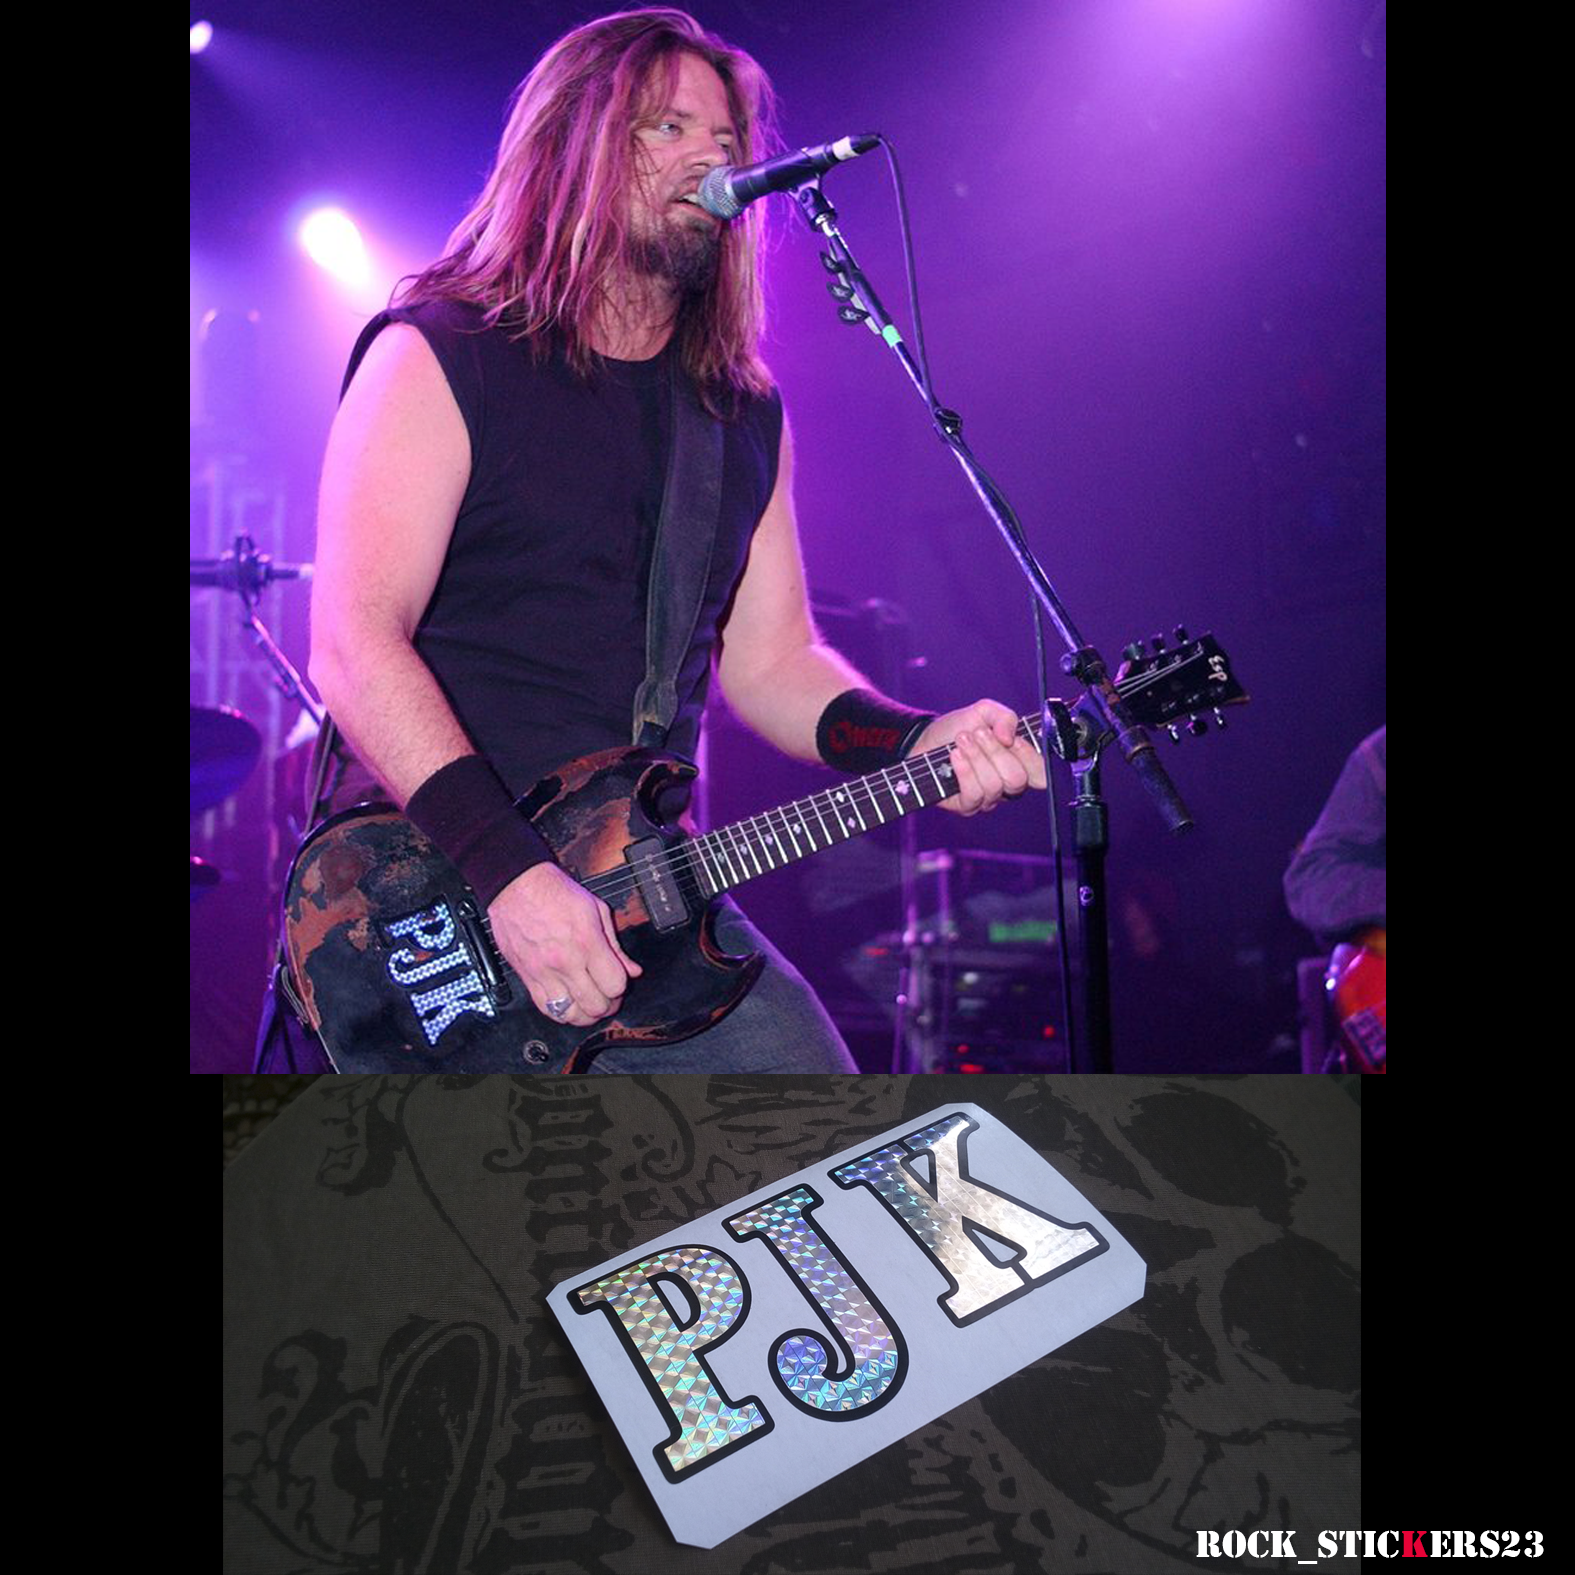 Pepper Keenan PJK stickers decal guitar